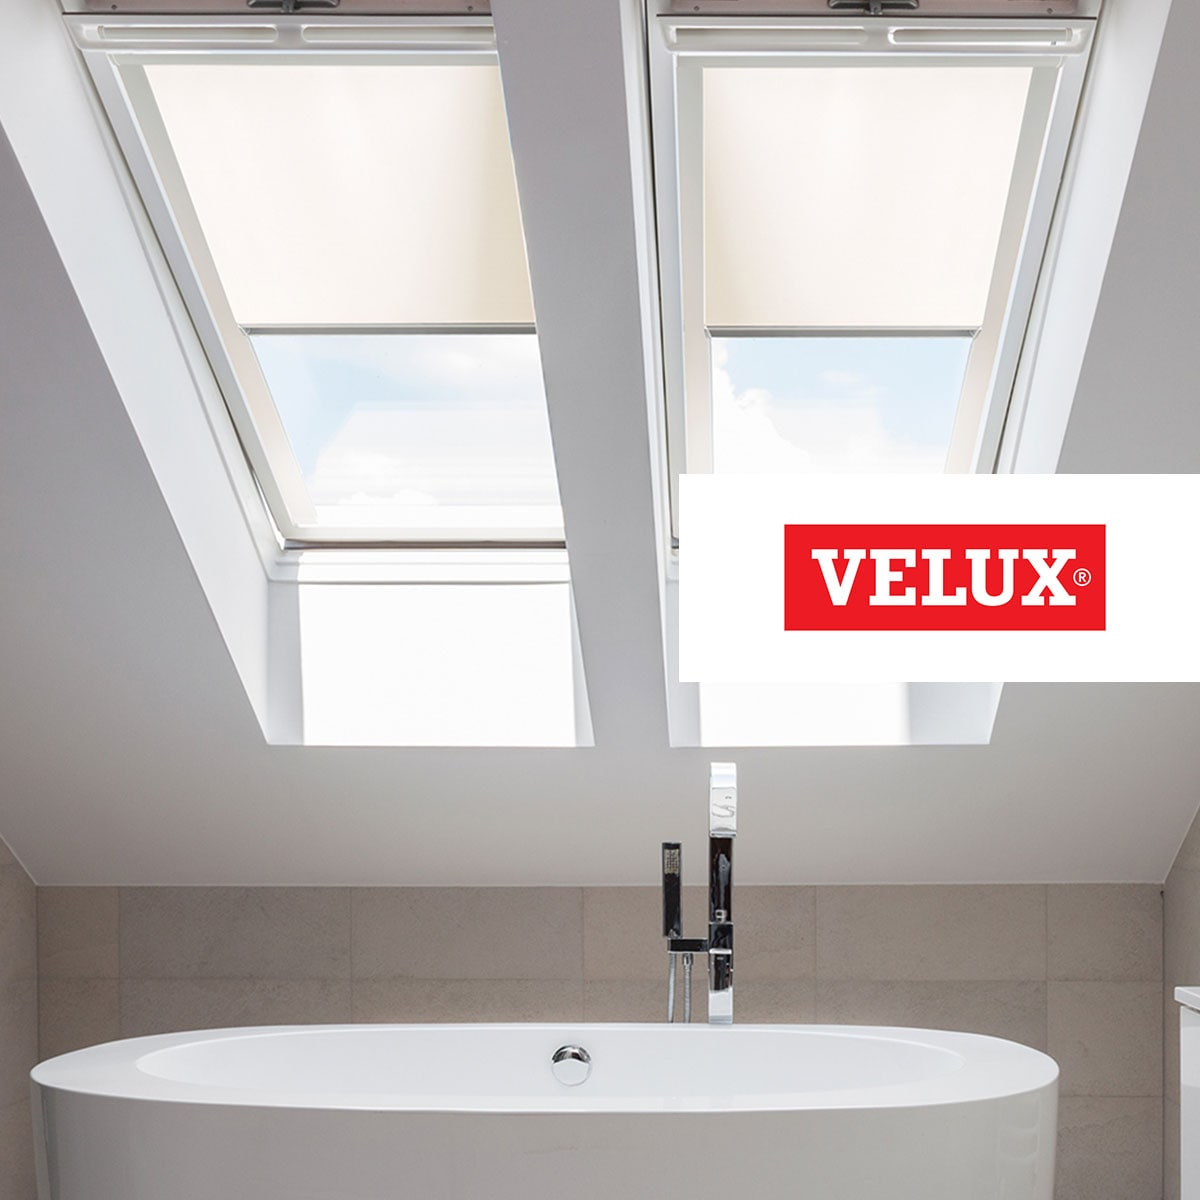 velux dachfenster rolladen best wundersch ne velux dachfenster rolladen ebenbild hausenstile. Black Bedroom Furniture Sets. Home Design Ideas